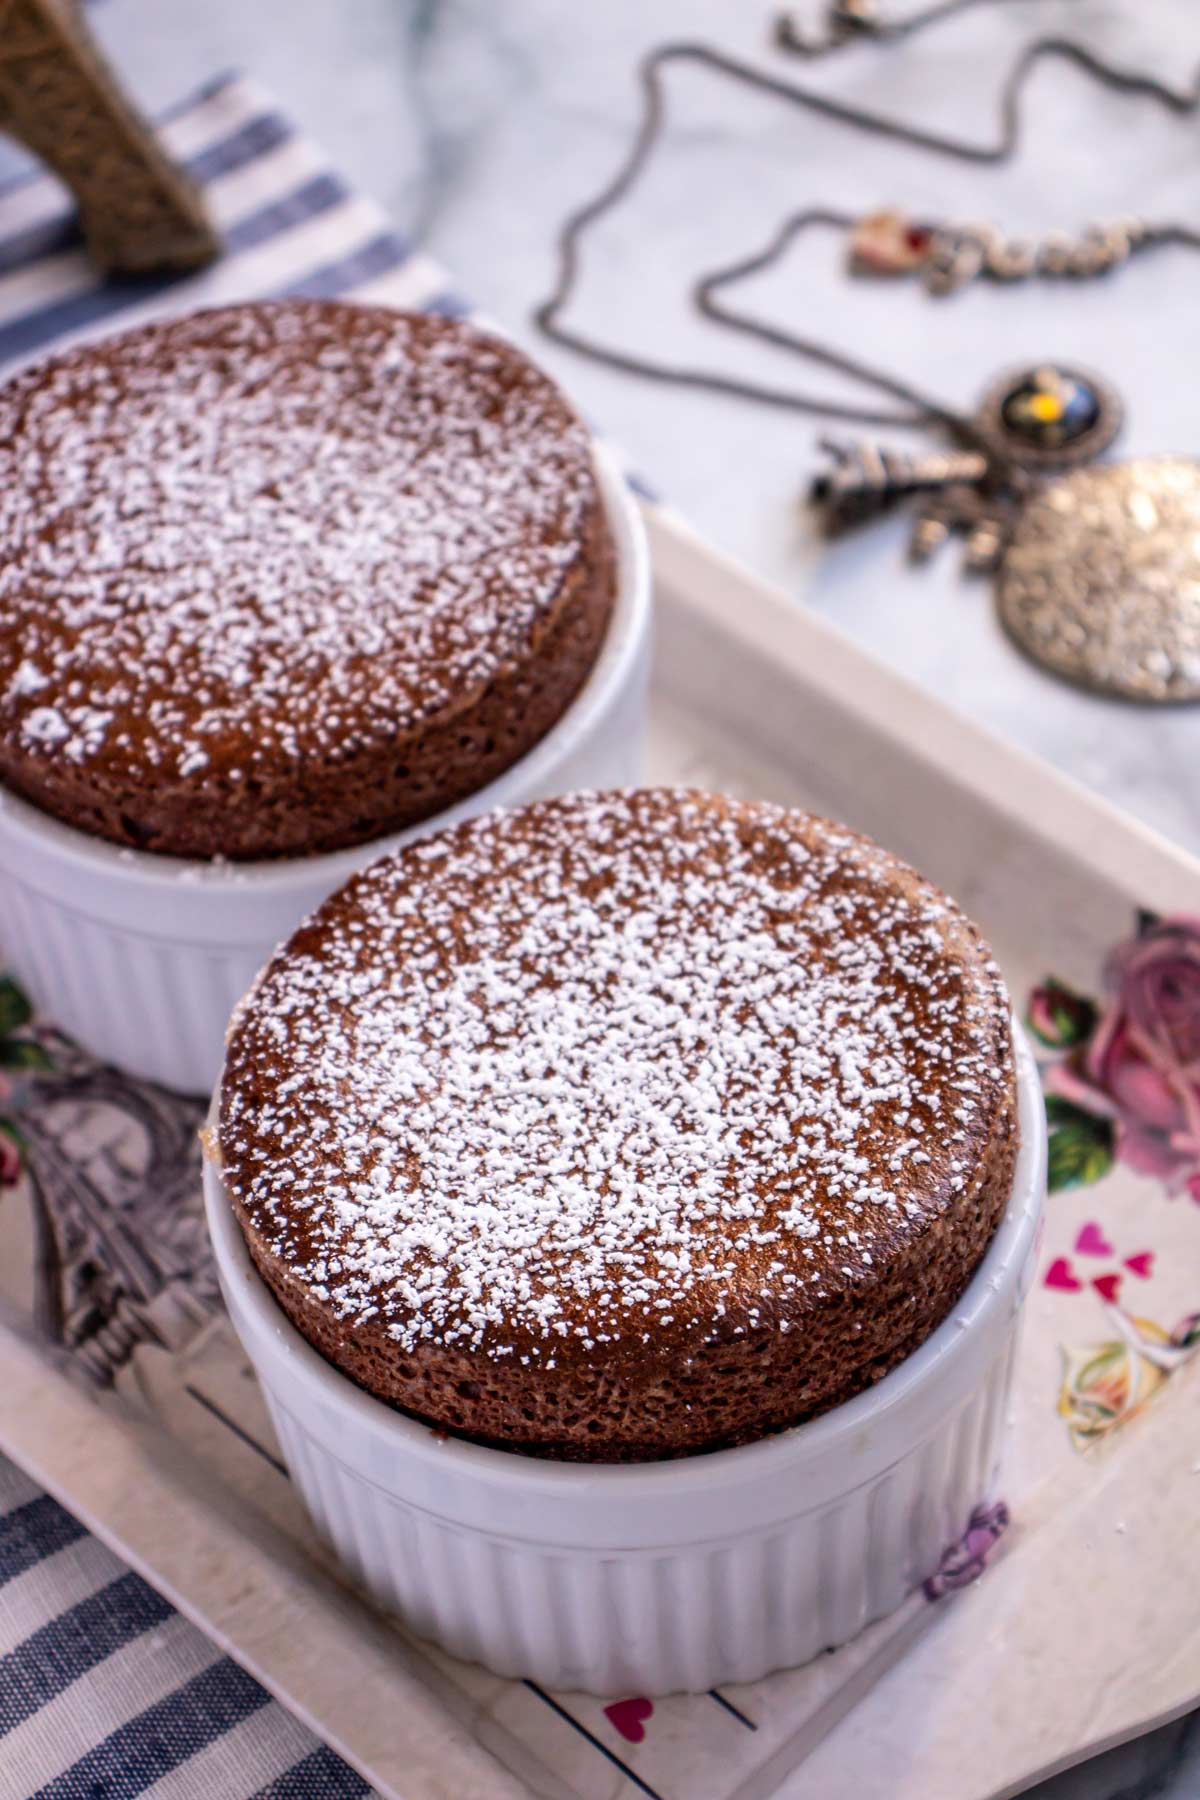 Two chocolate soufflés dusted with powdered sugar on a small decorative tray.